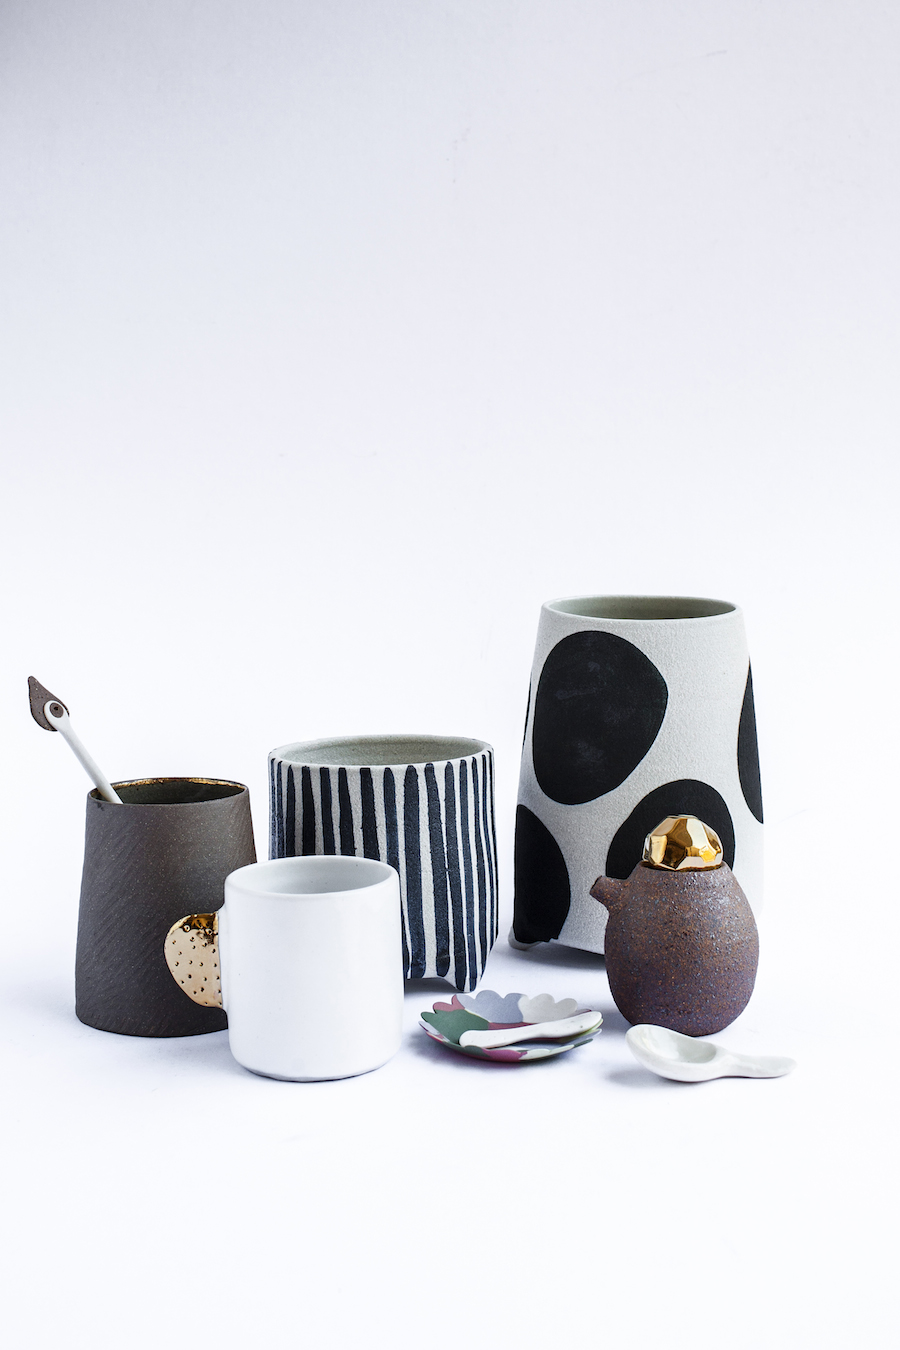 Bridget Bodenham ceramics with gold glazing